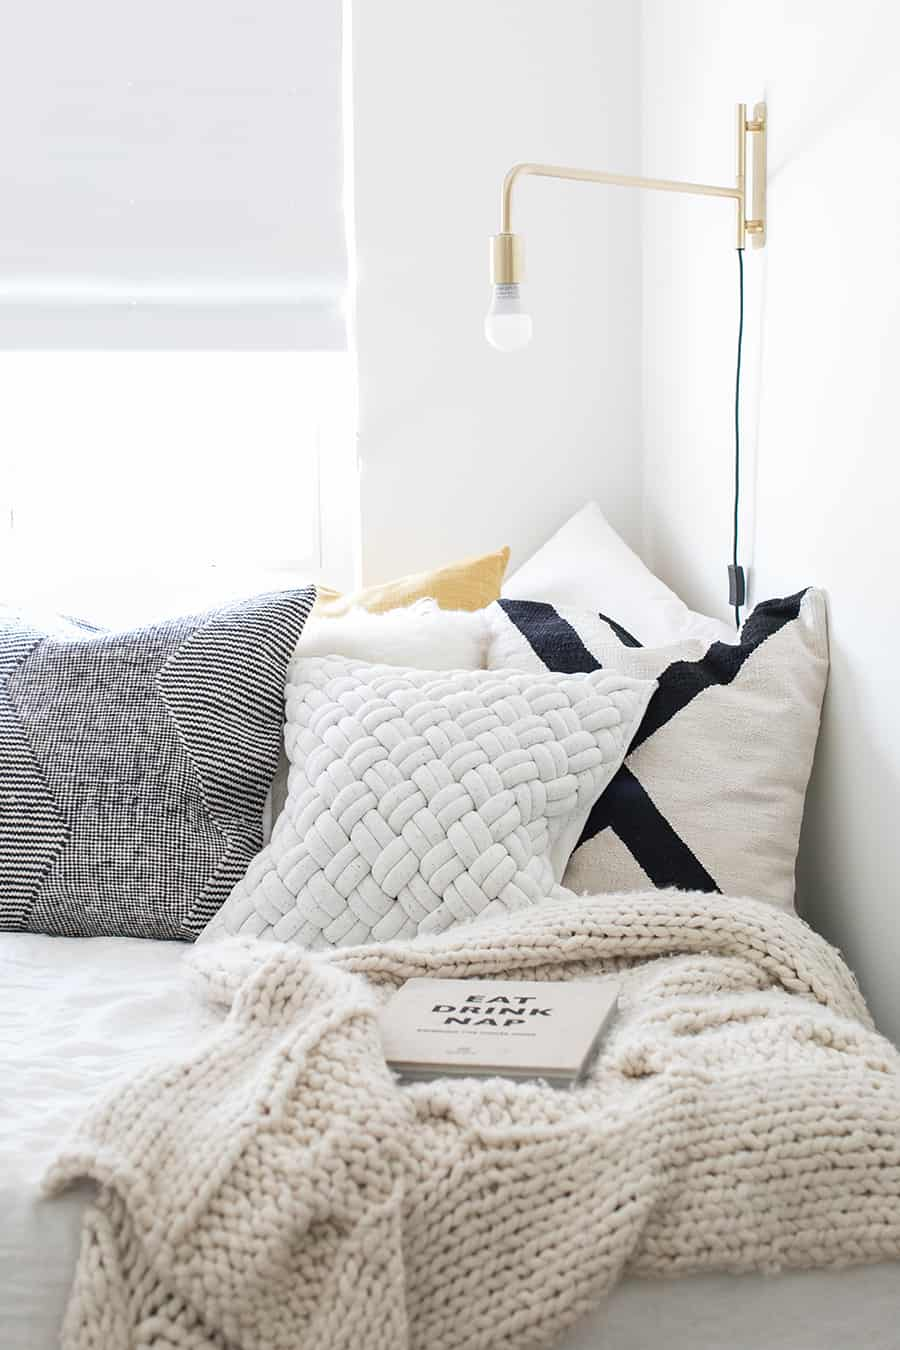 Pillows on a bed with a swing lamp and a knit blanket.